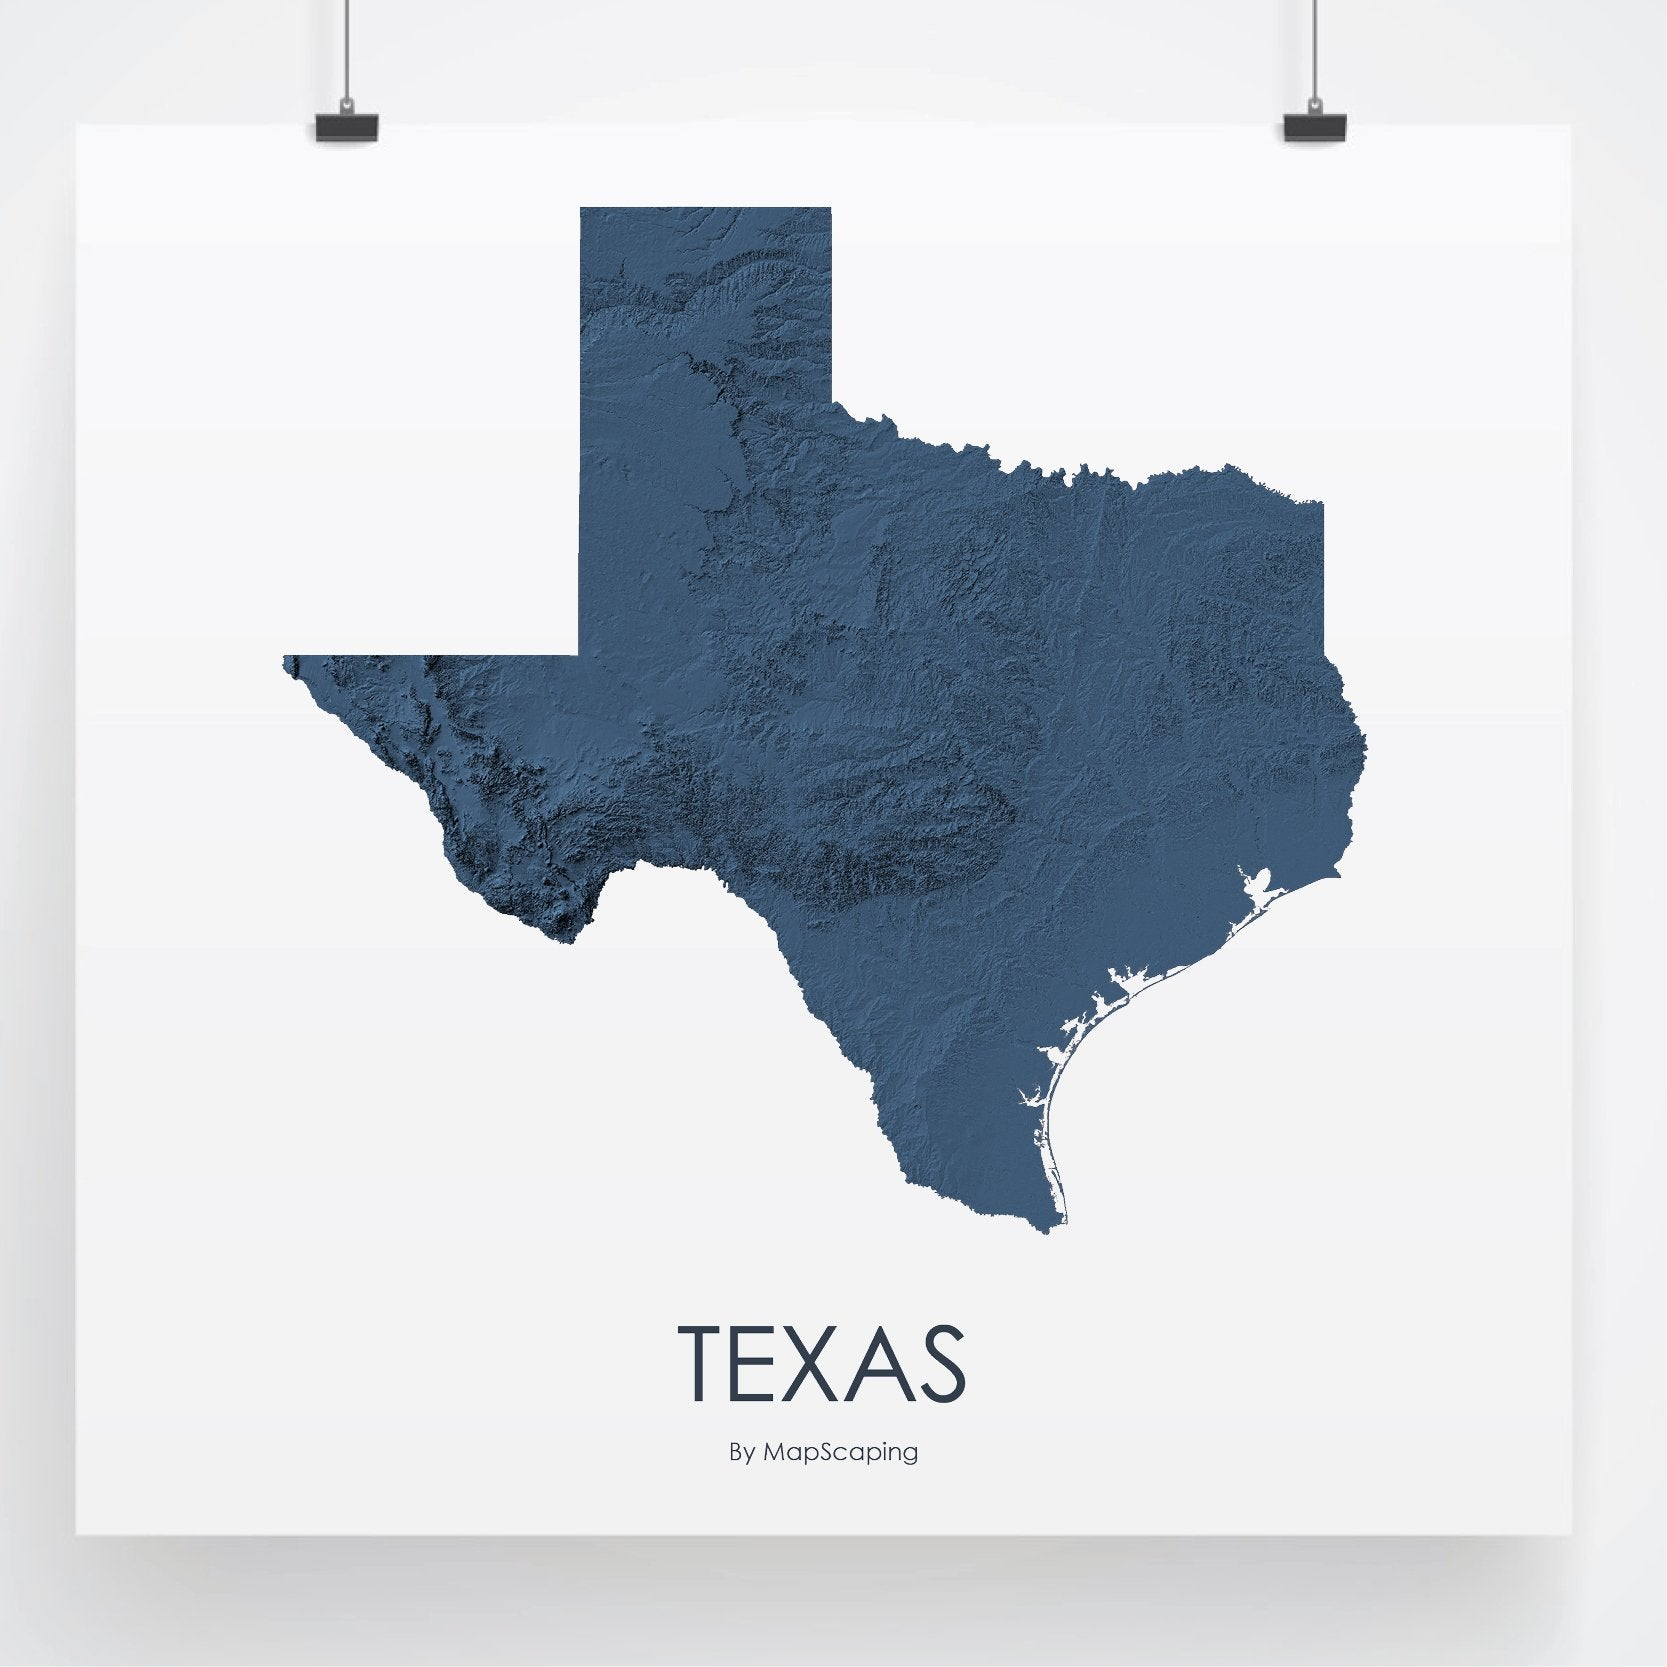 Texas Poster Solid Midnight Blue -Topographic map art by MapScaping